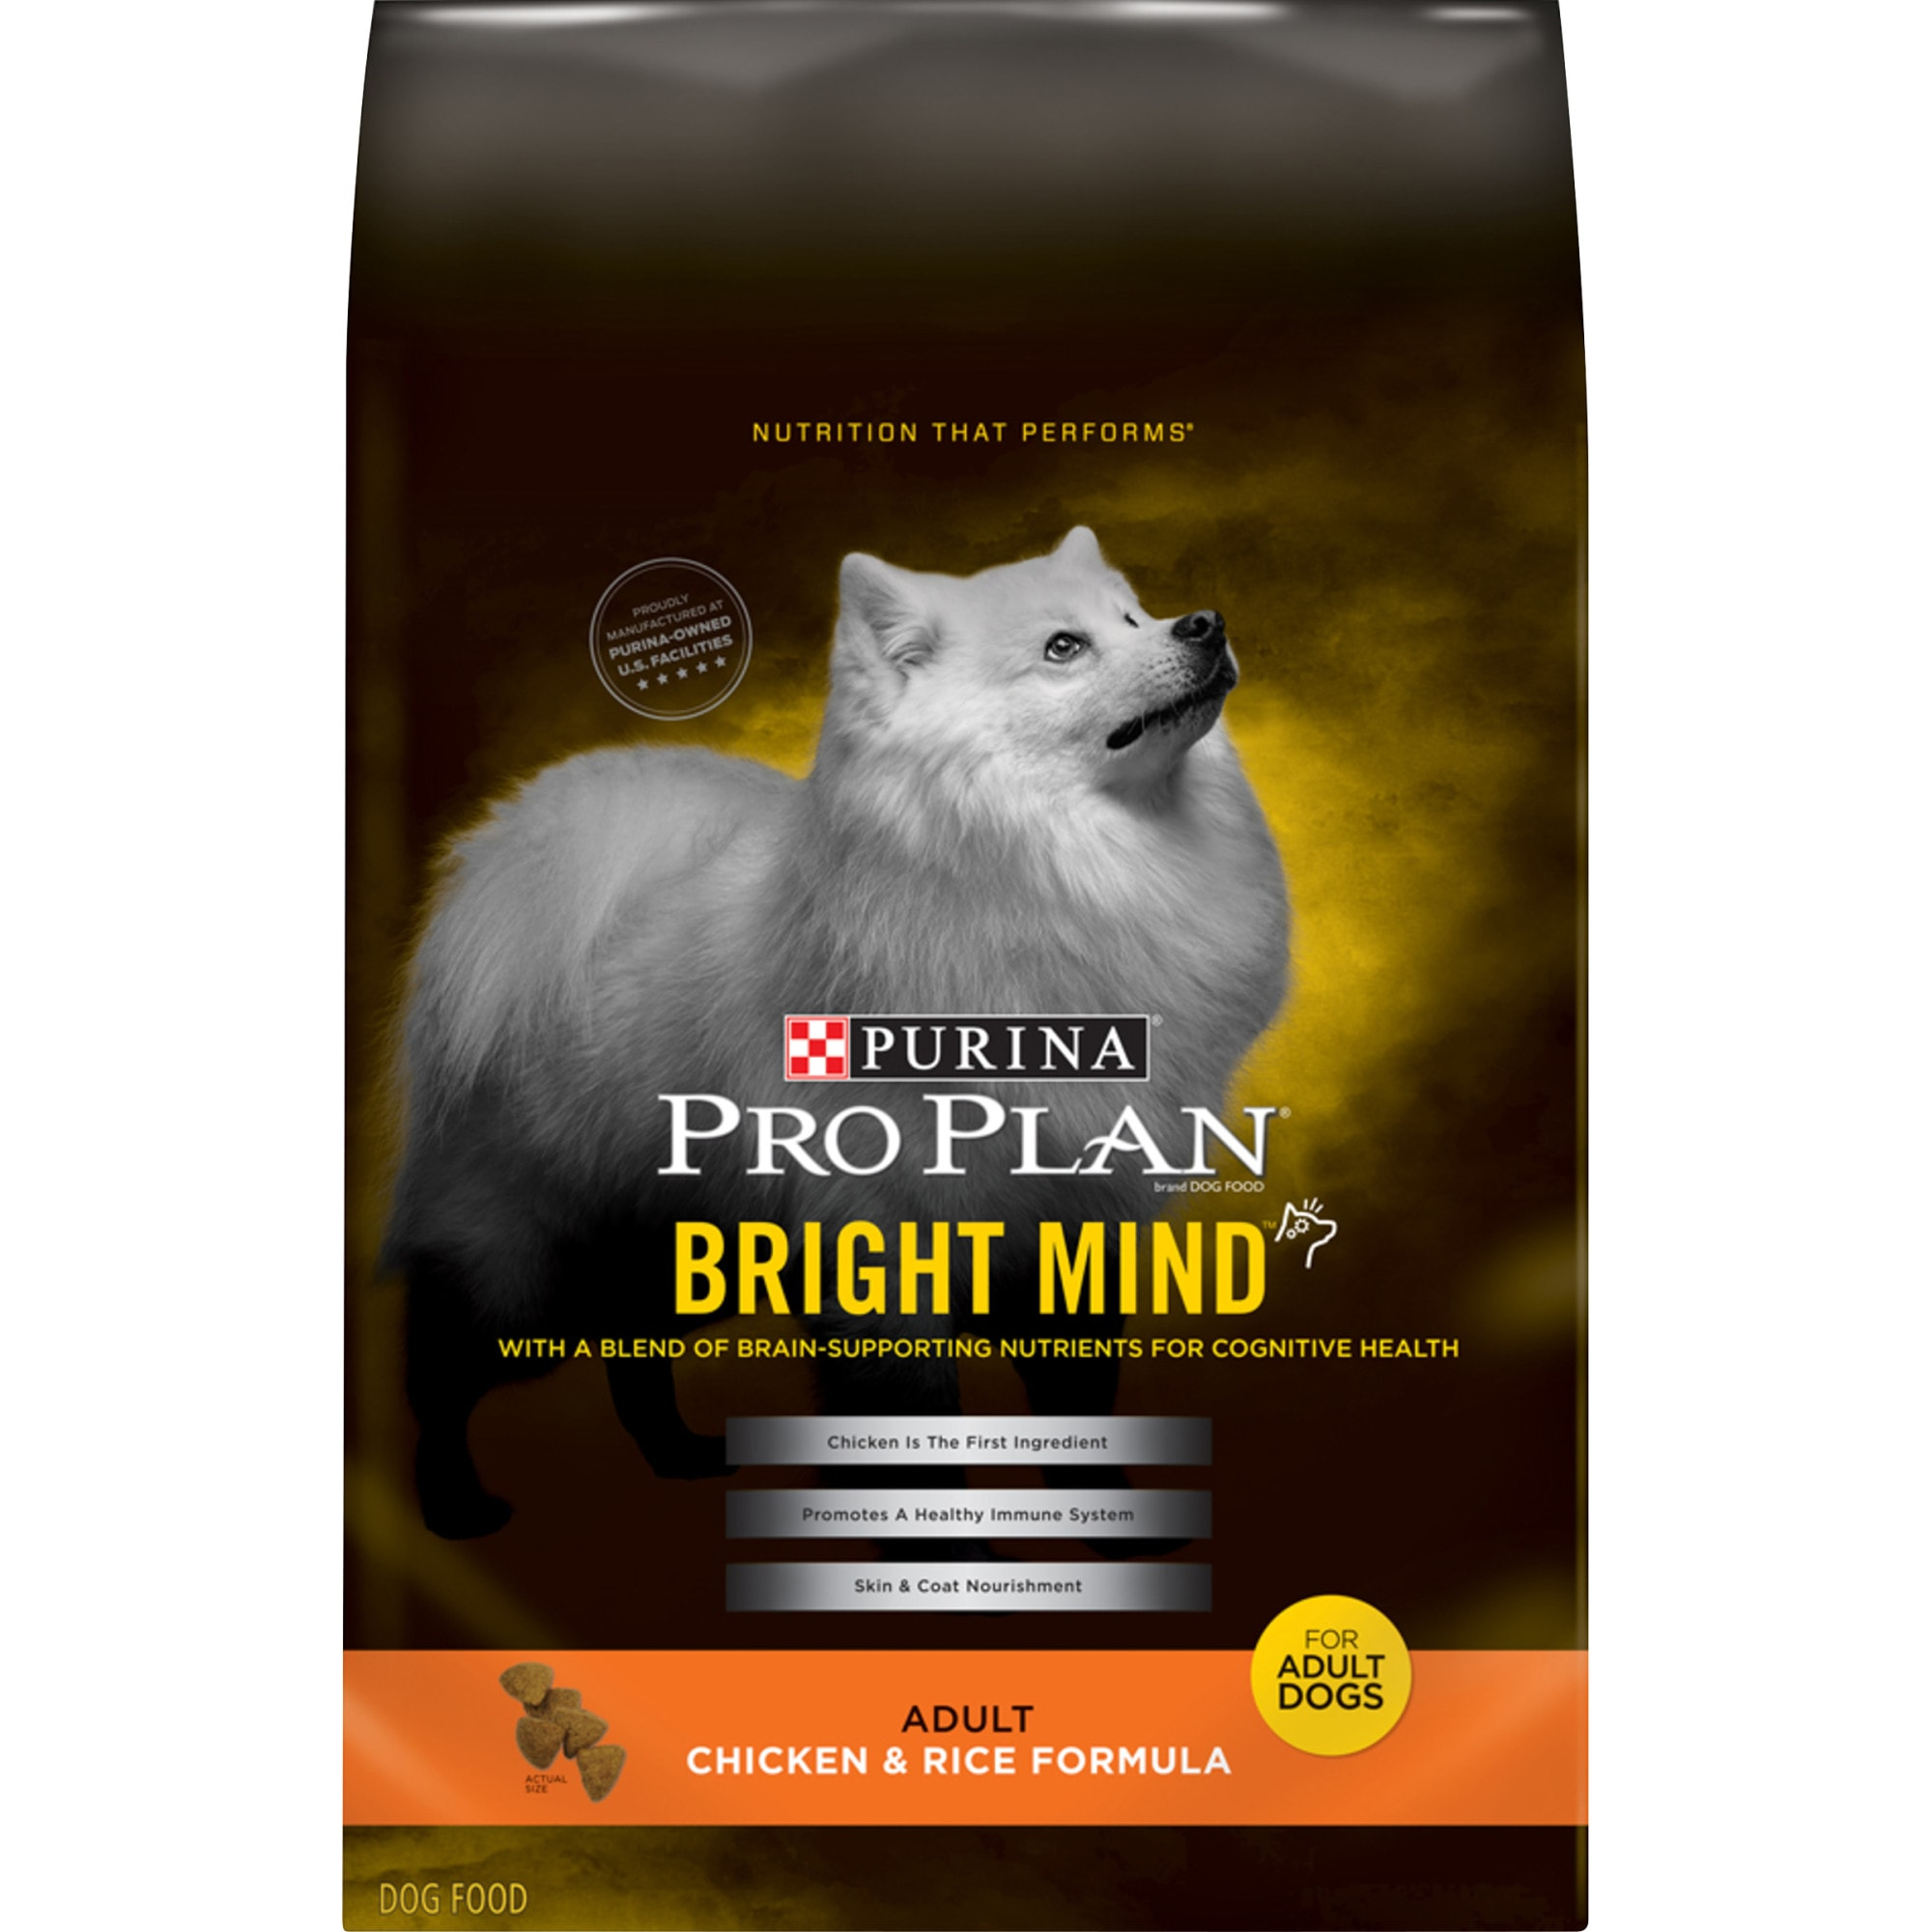 Purina Pro Plan Bright Mind Chicken & Rice Formula Adult Dry Dog Food, 30 lbs.